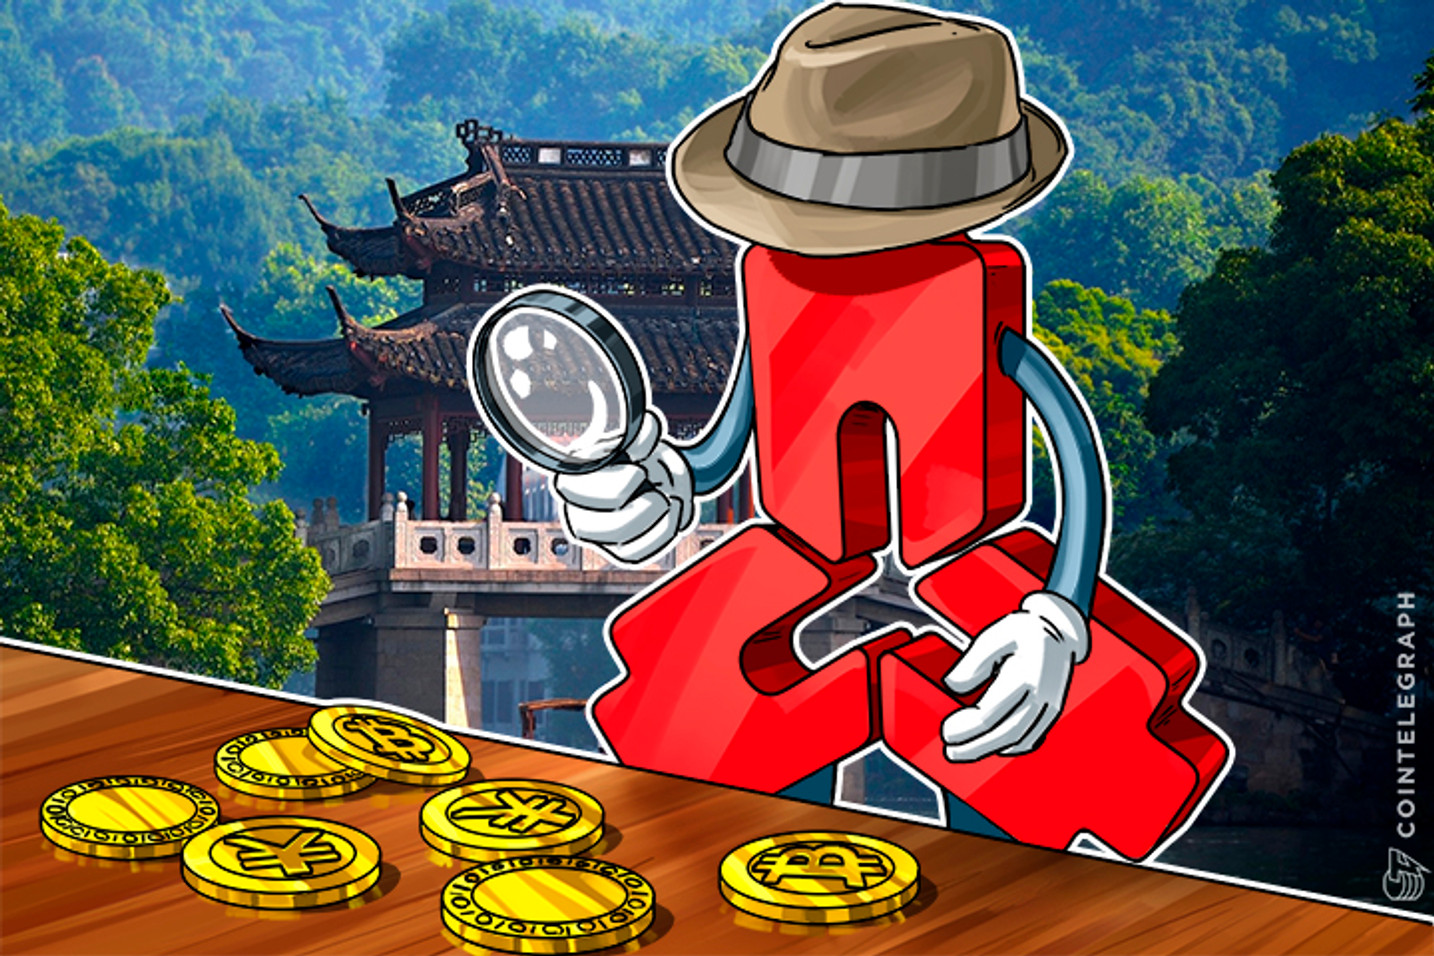 PBOC Investigation Reveals Illegal Operations in Chinese Bitcoin Exchanges, Bitcoin Price Affected